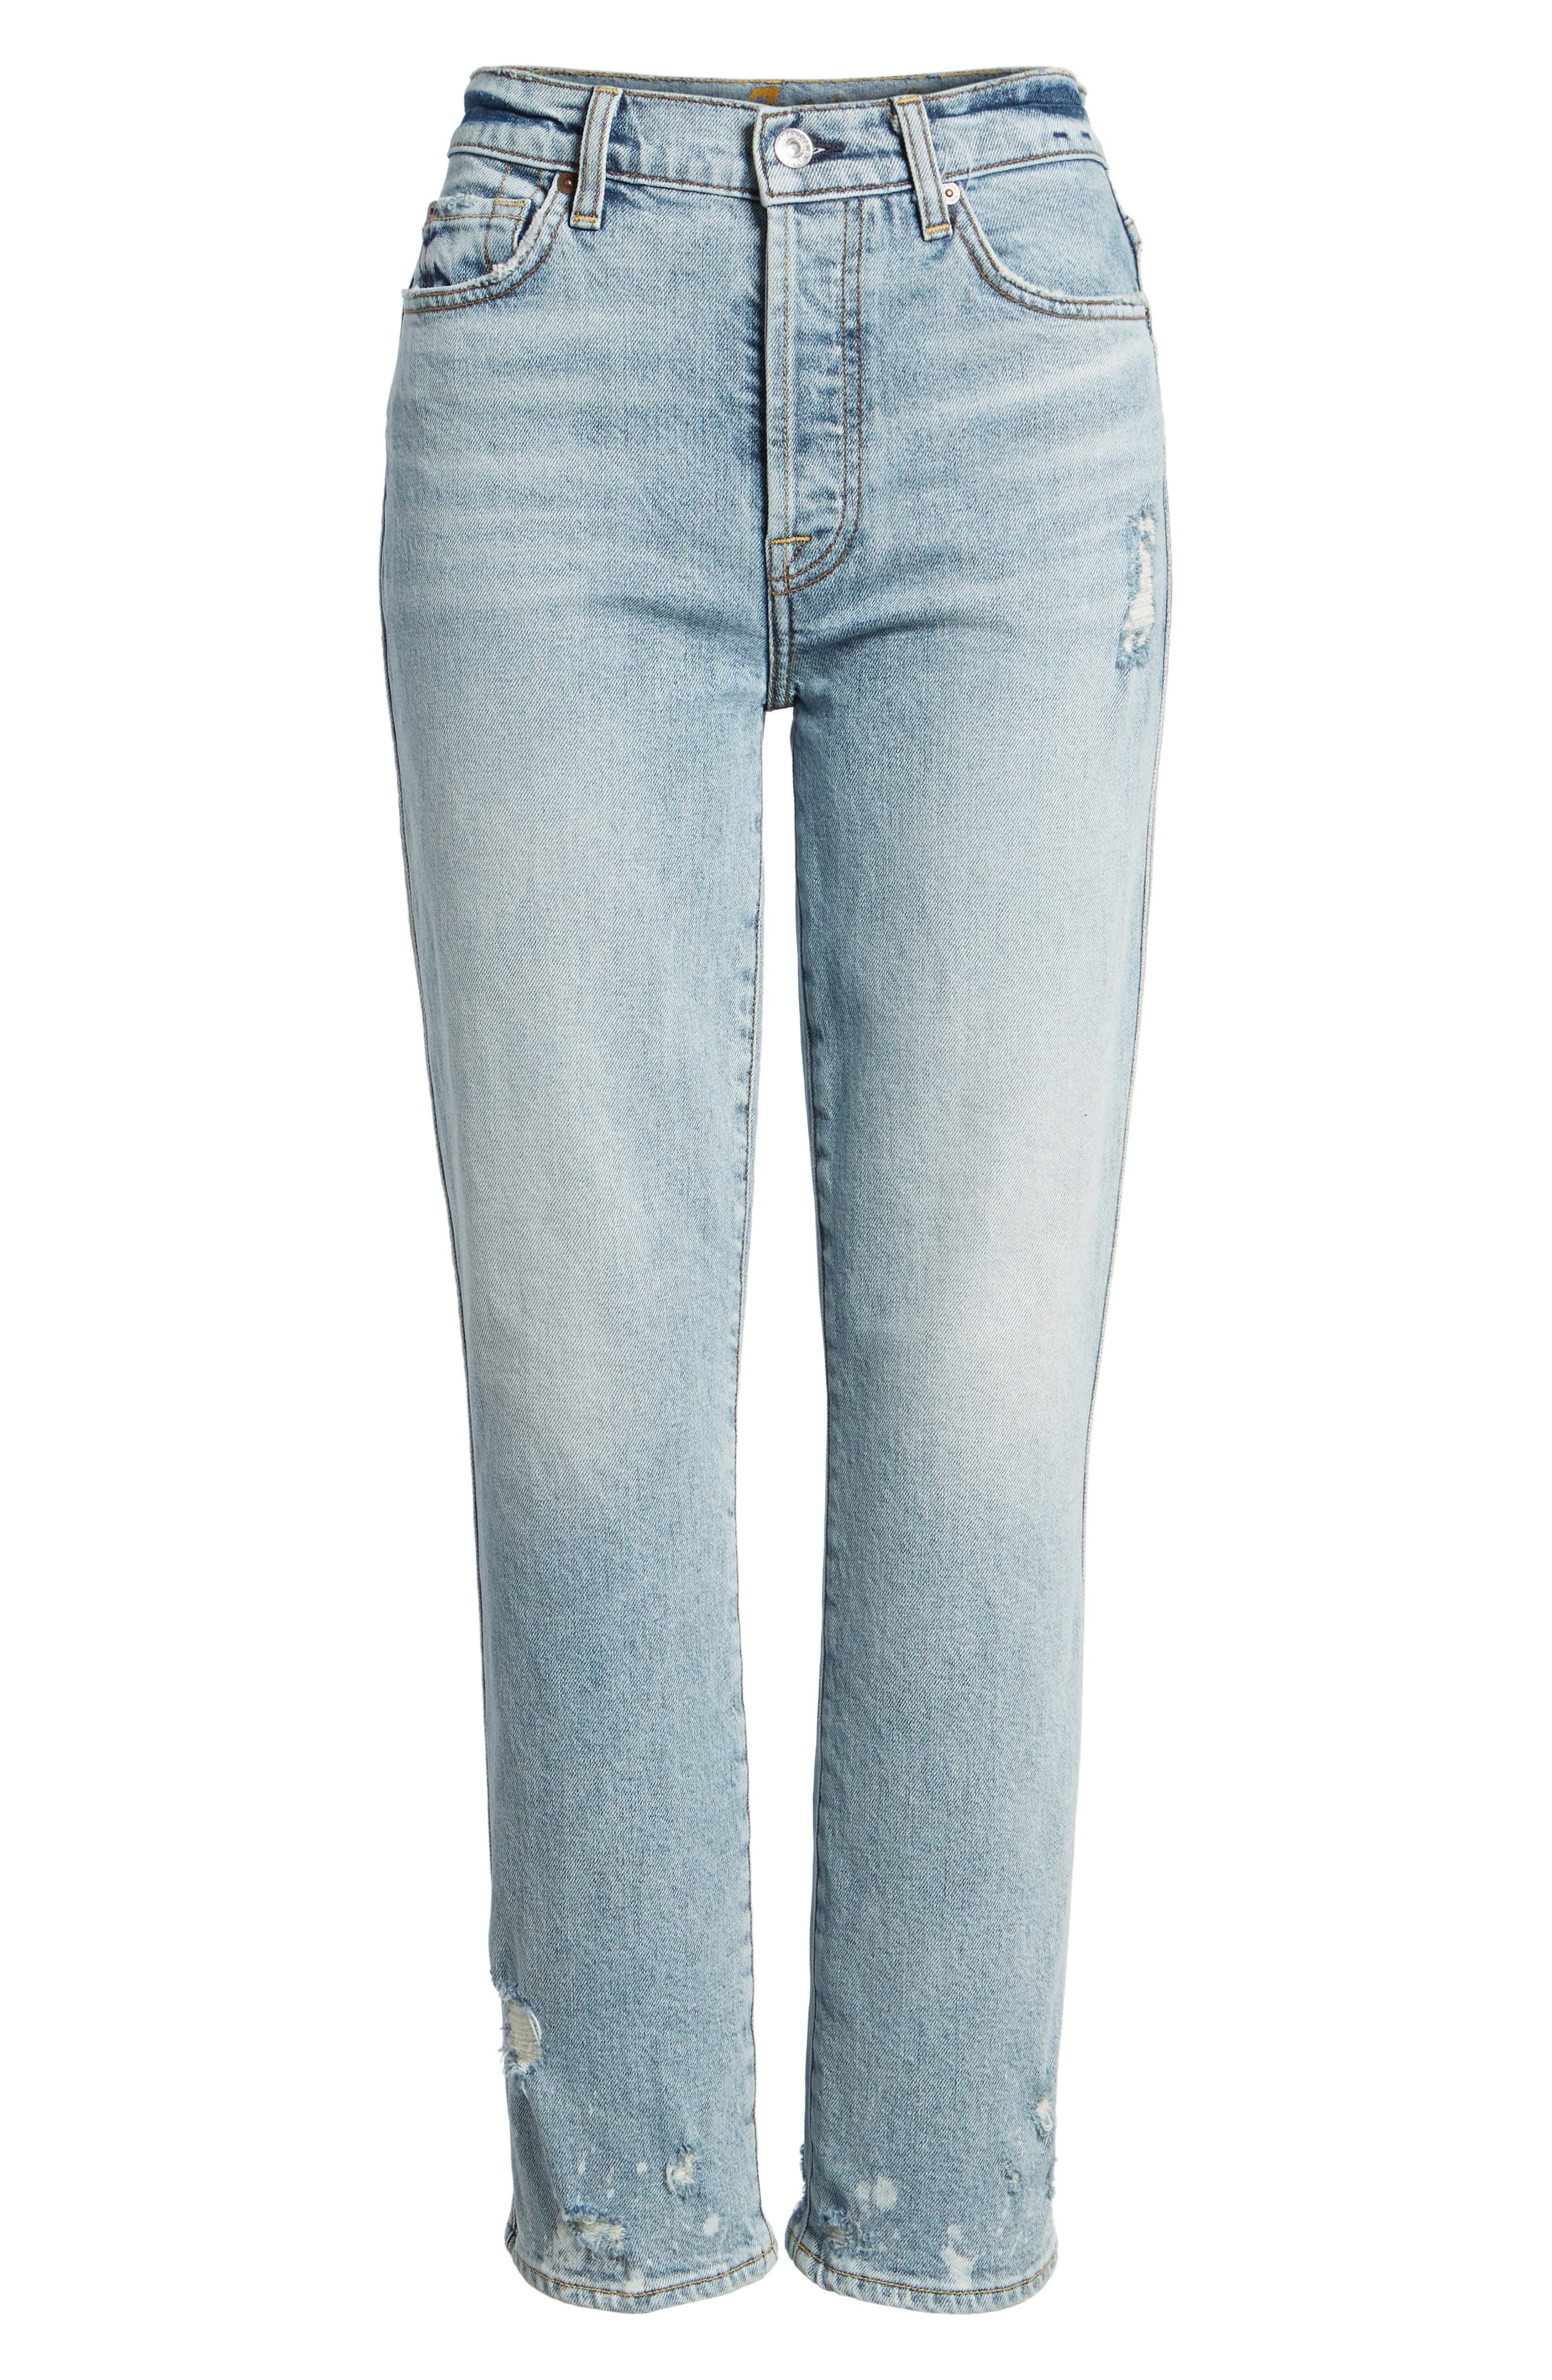 Edie High Waist Crop Straight Leg Jeans,                             Alternate thumbnail 7, color,                             400